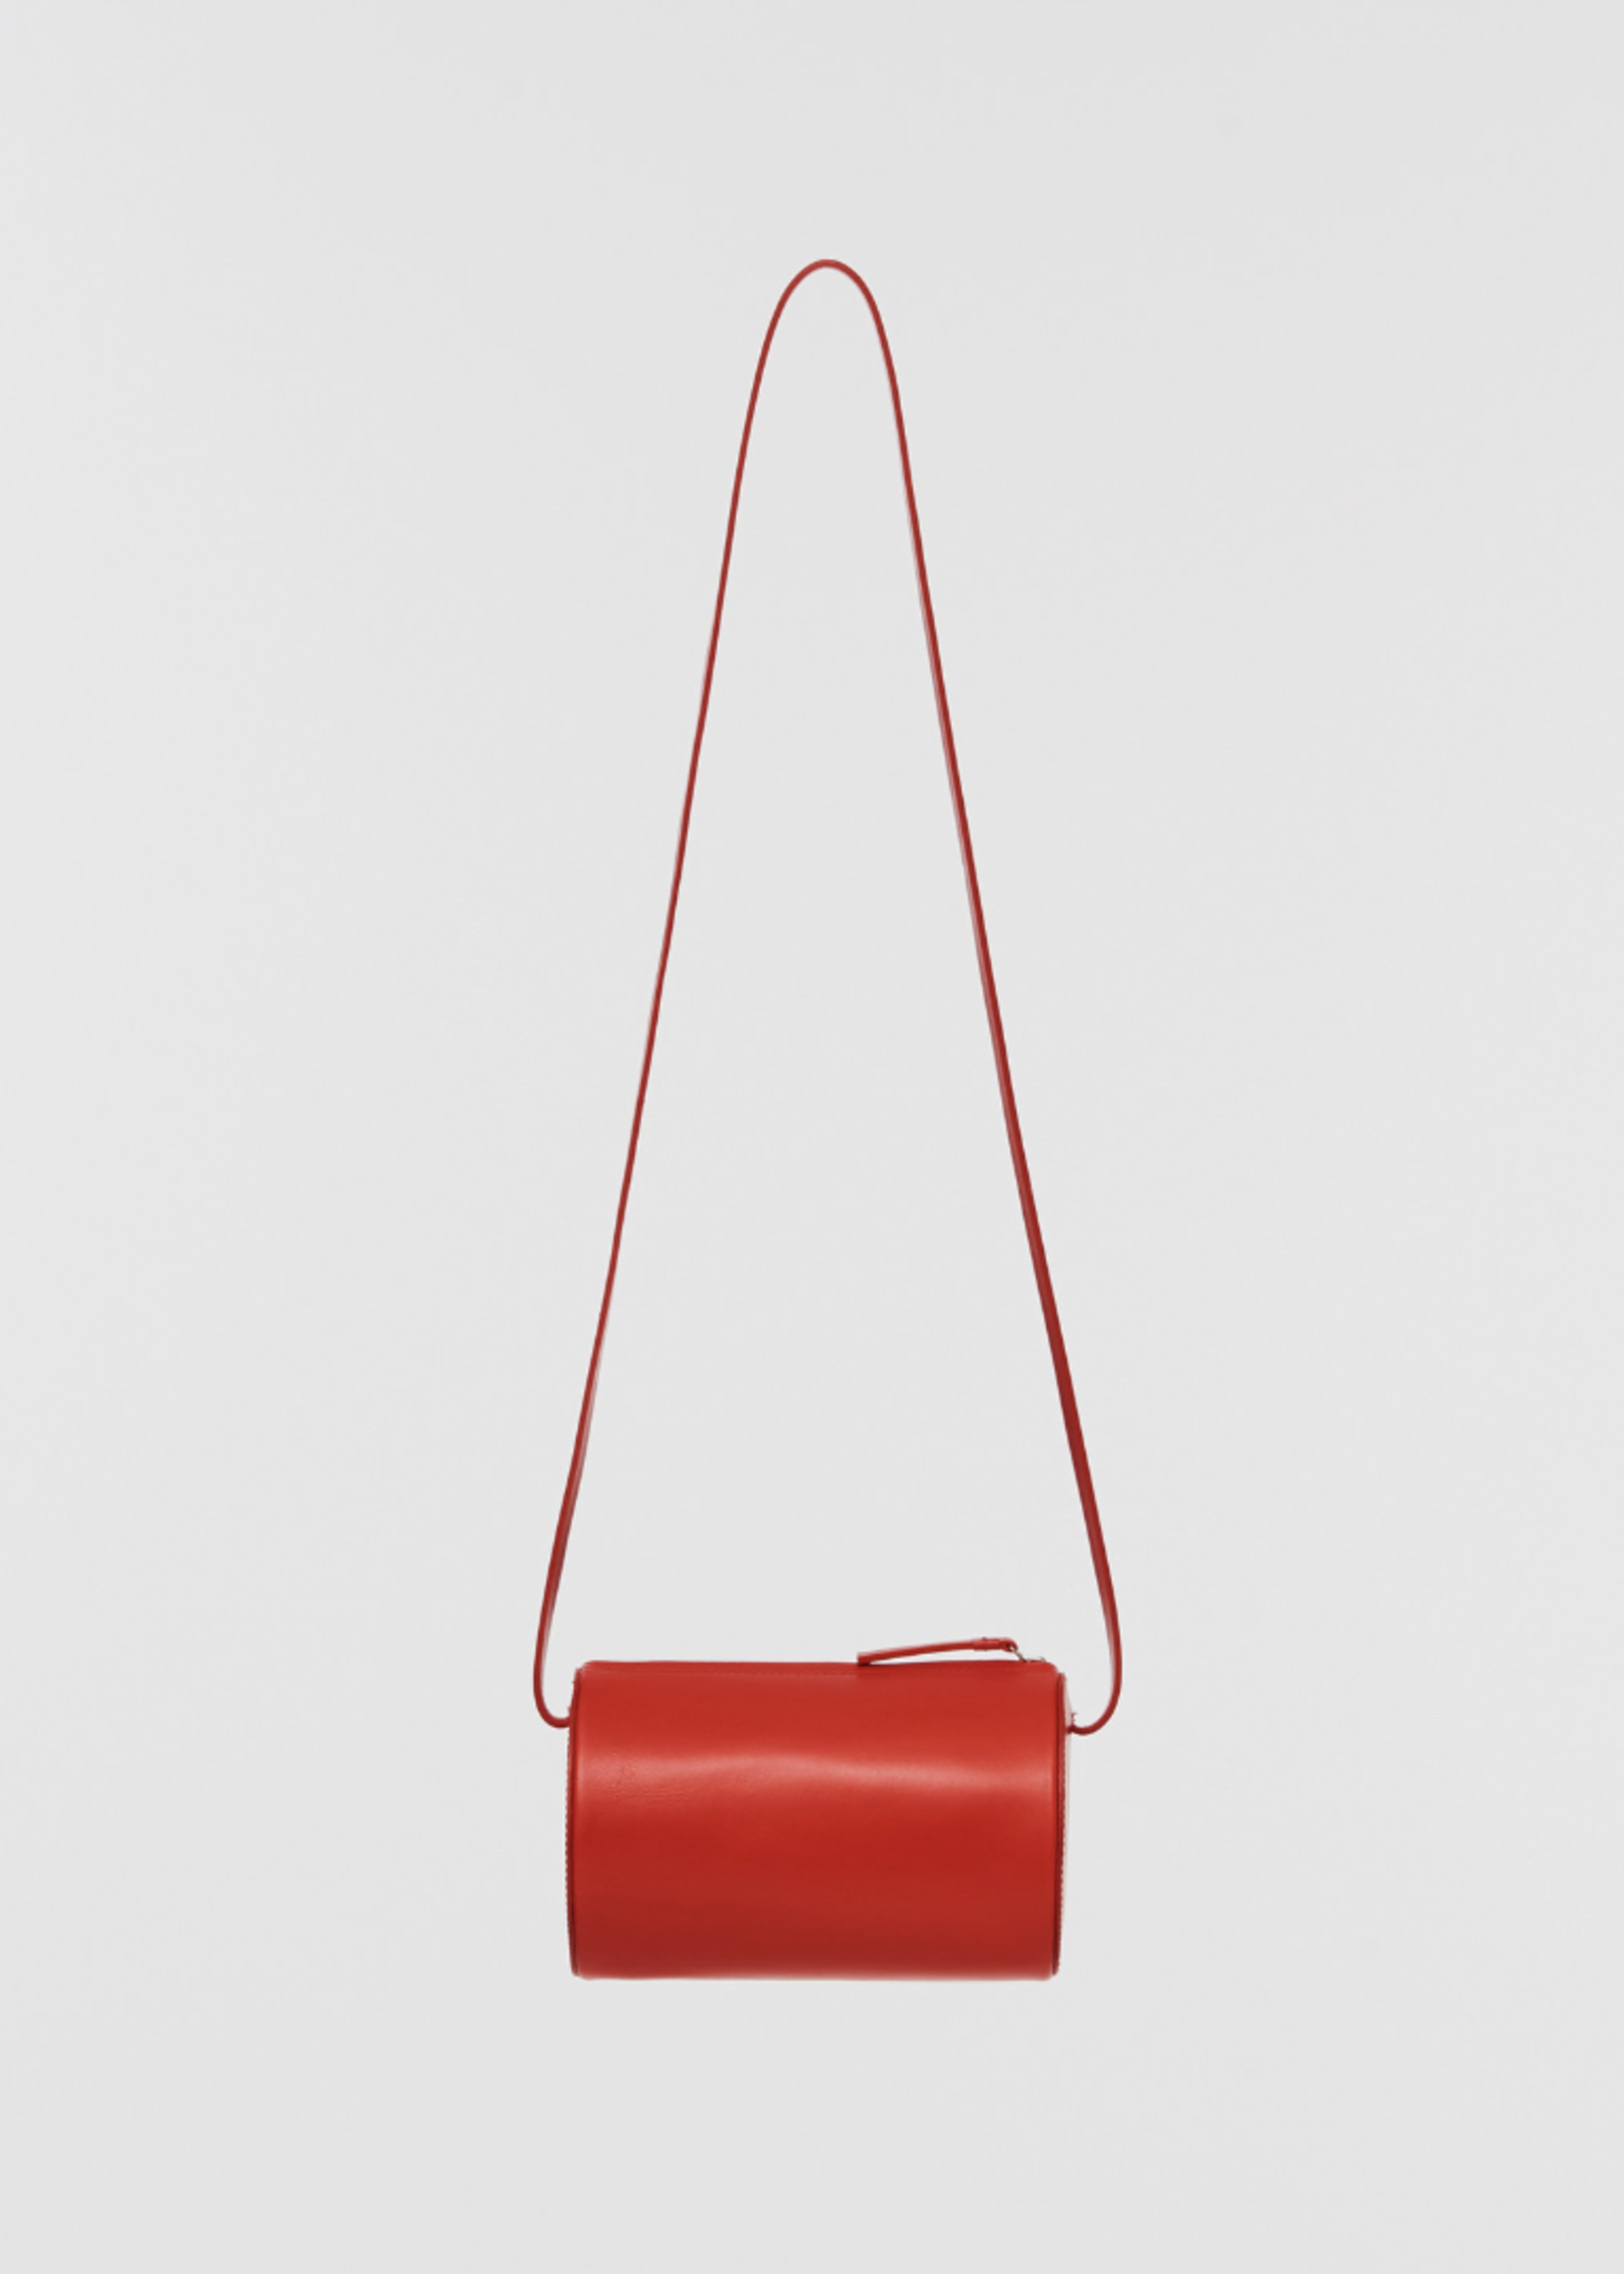 Building Block Cylinder Sling in Red